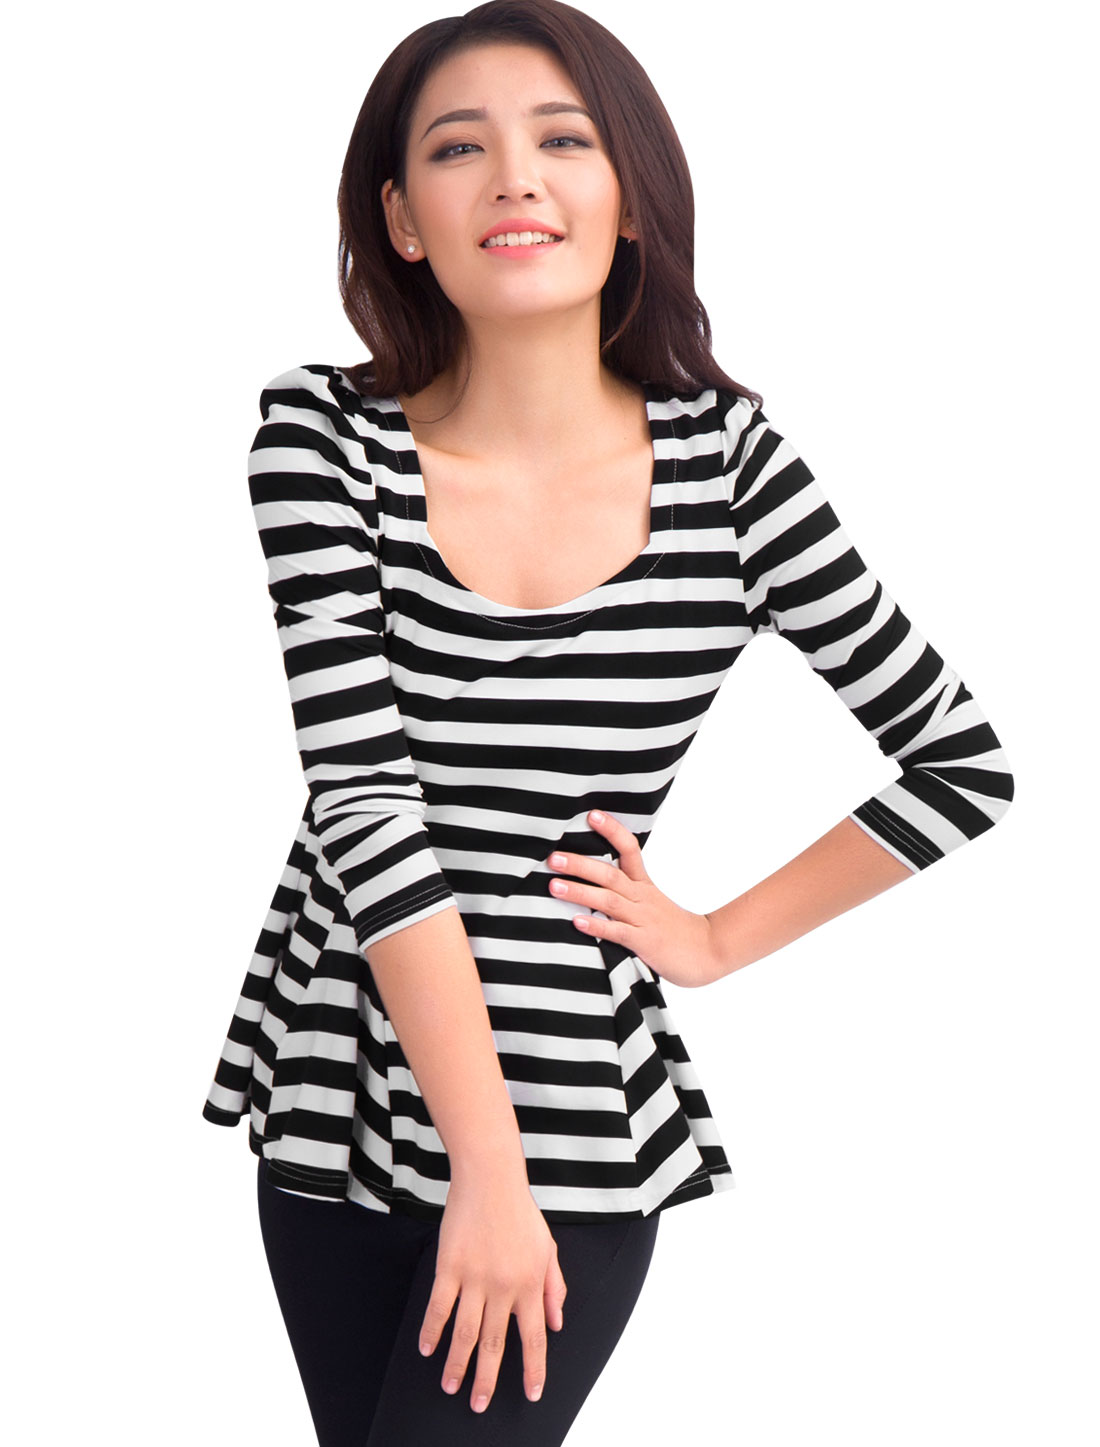 Ladies Black White Long Sleeve Stretch Bar Striped Slim Tunic Shirt M